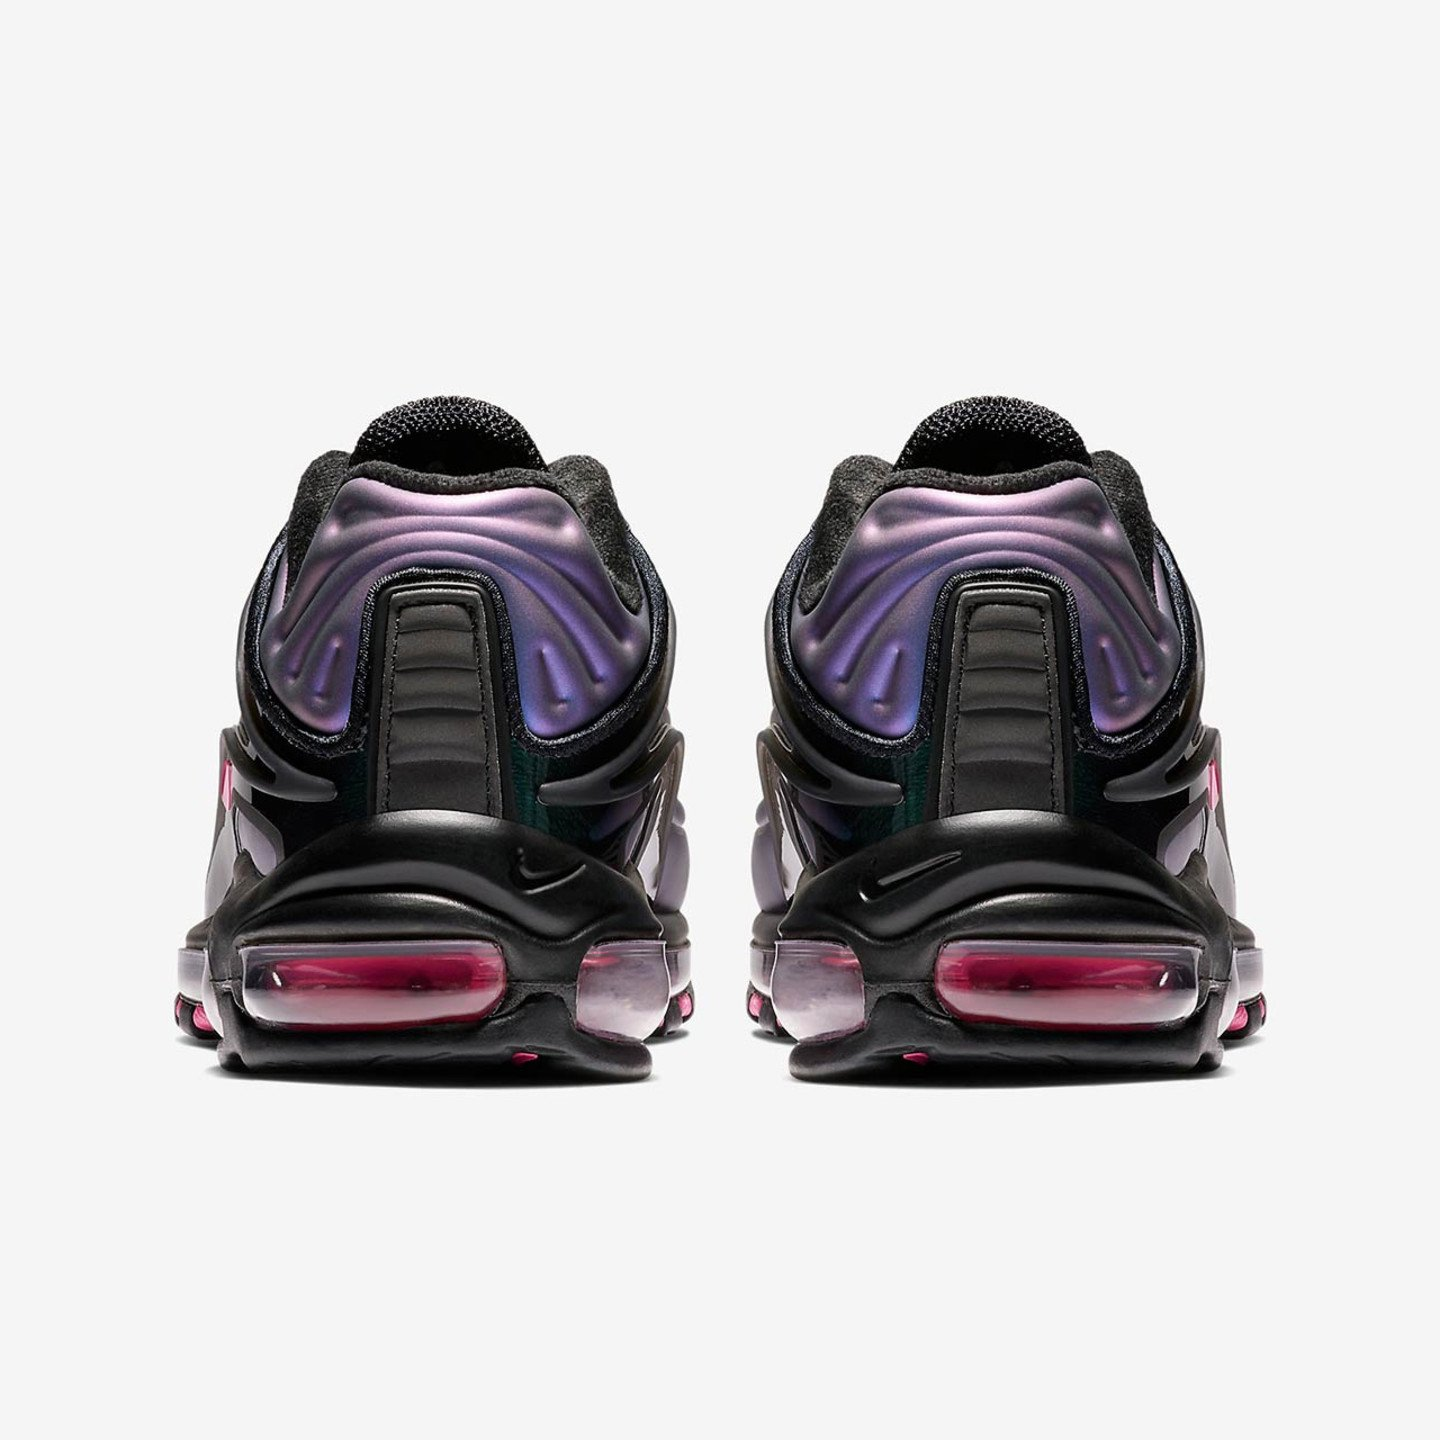 Nike Air Max Deluxe 'Throwback Future' Black / Laser Fuchsia / Regency Purple AJ7831-004